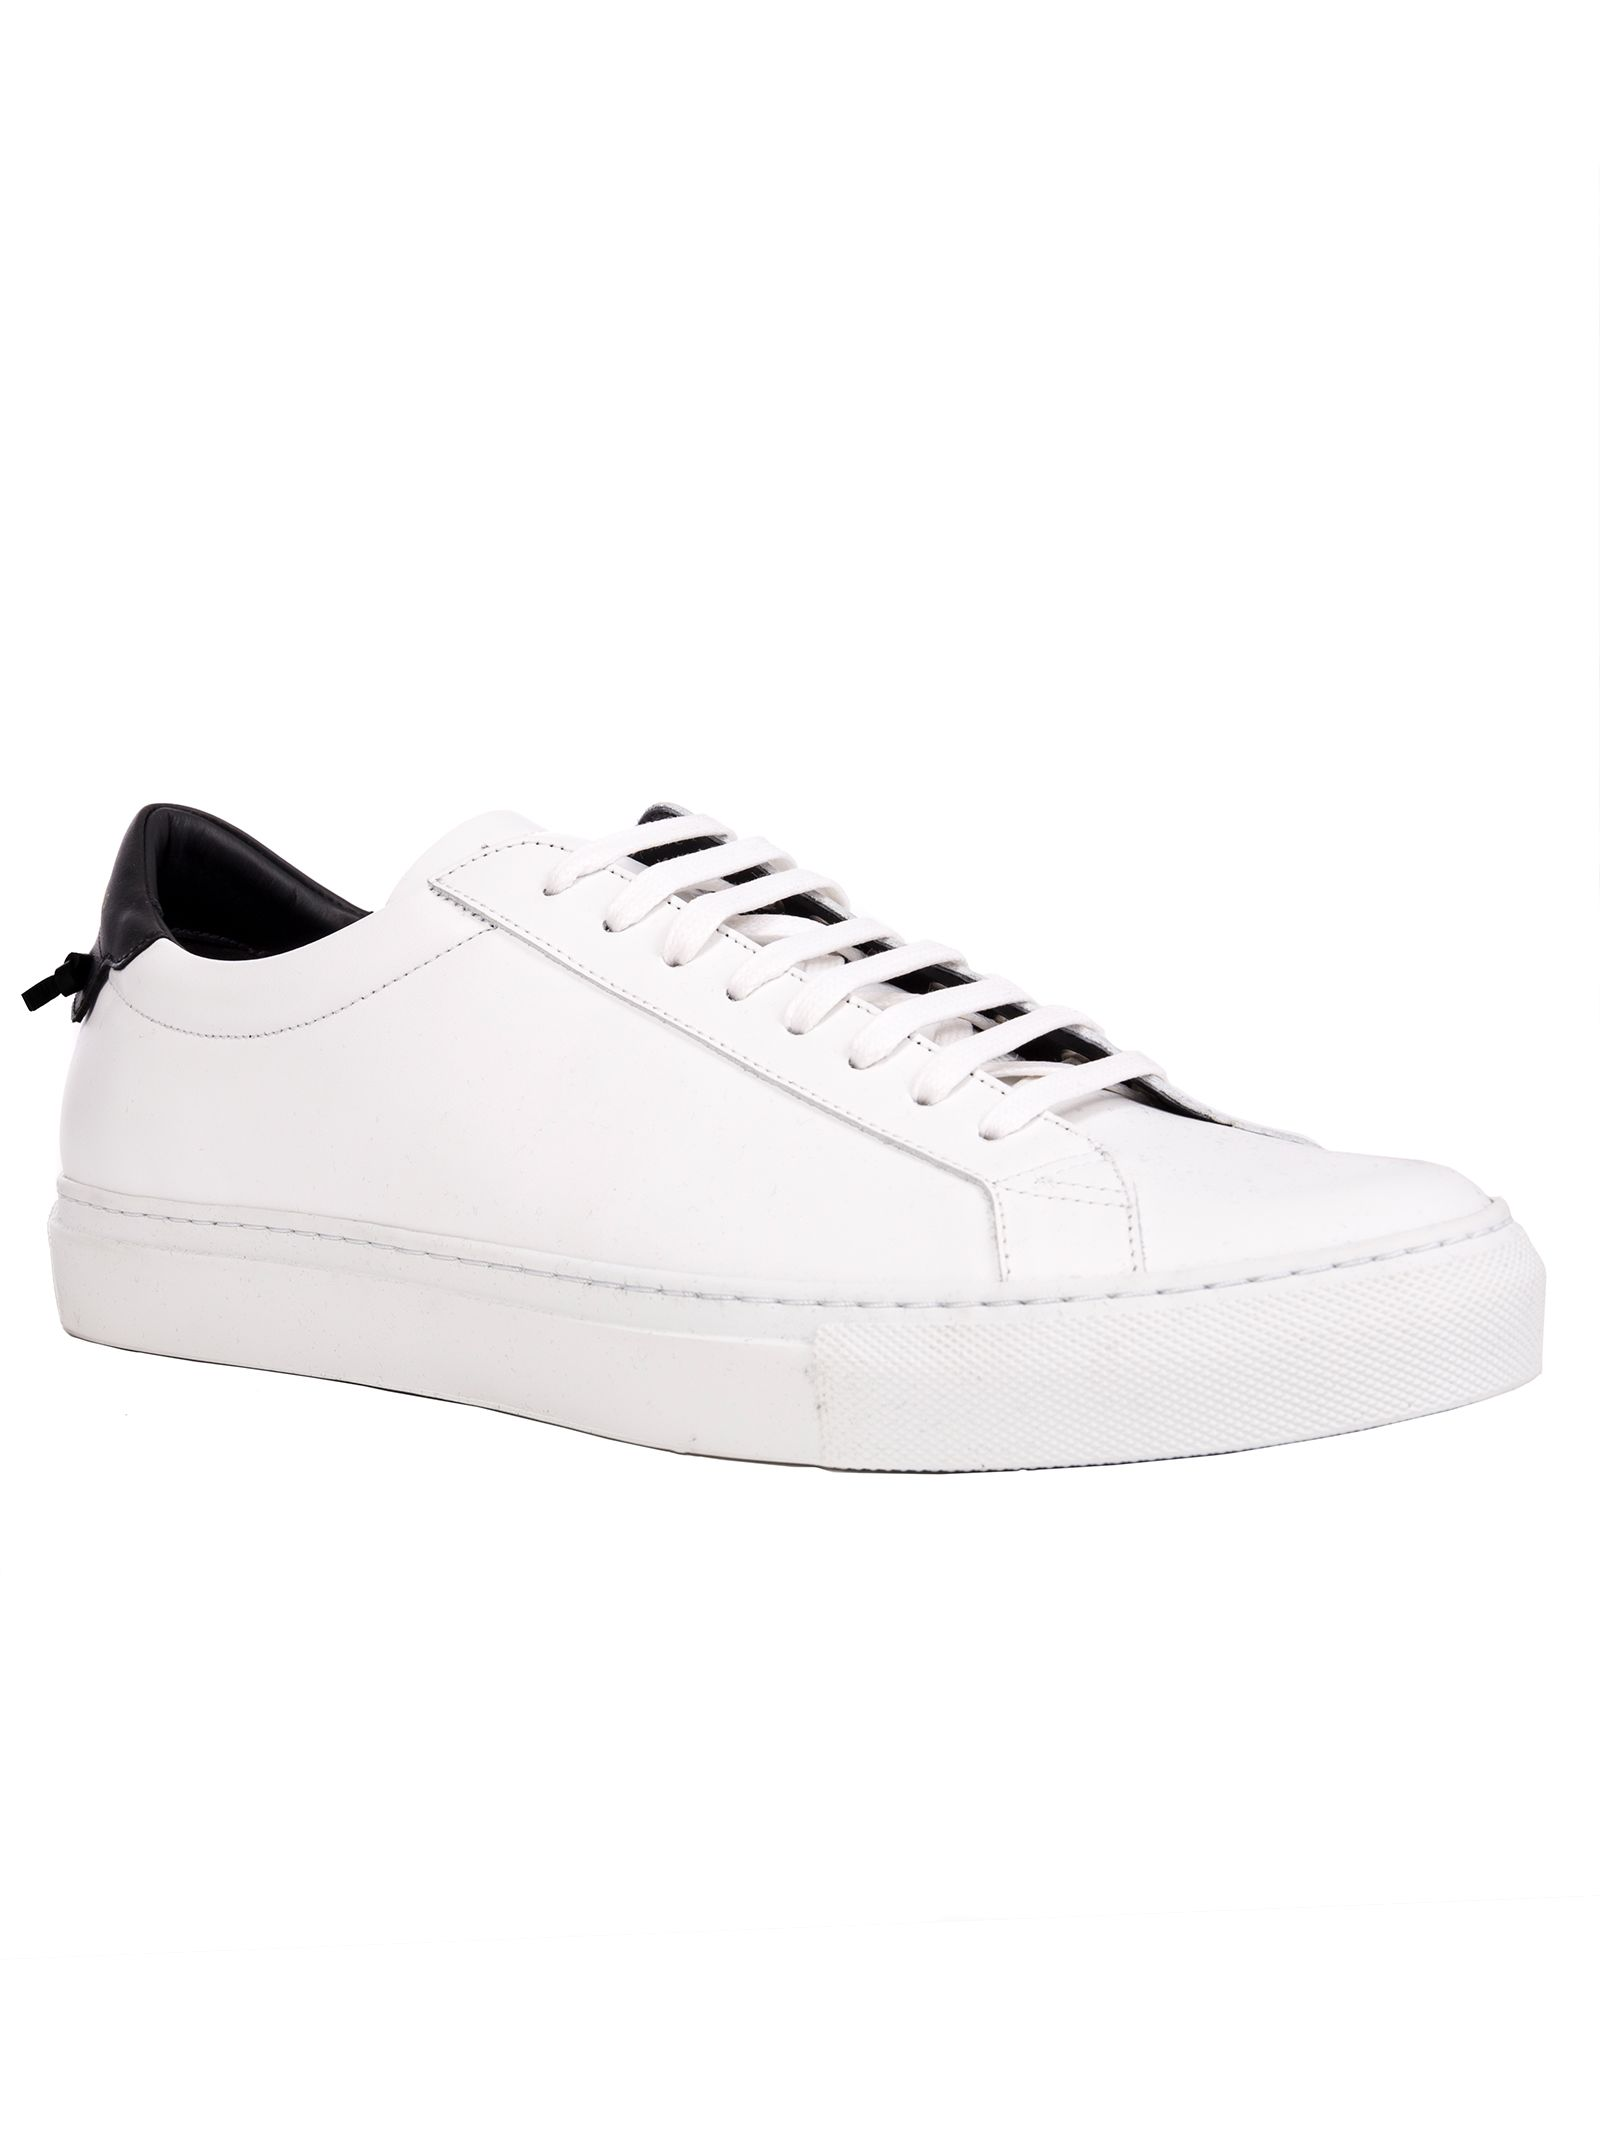 GIVENCHY PARIS URBAN STREET SNEAKERS IN WHITE